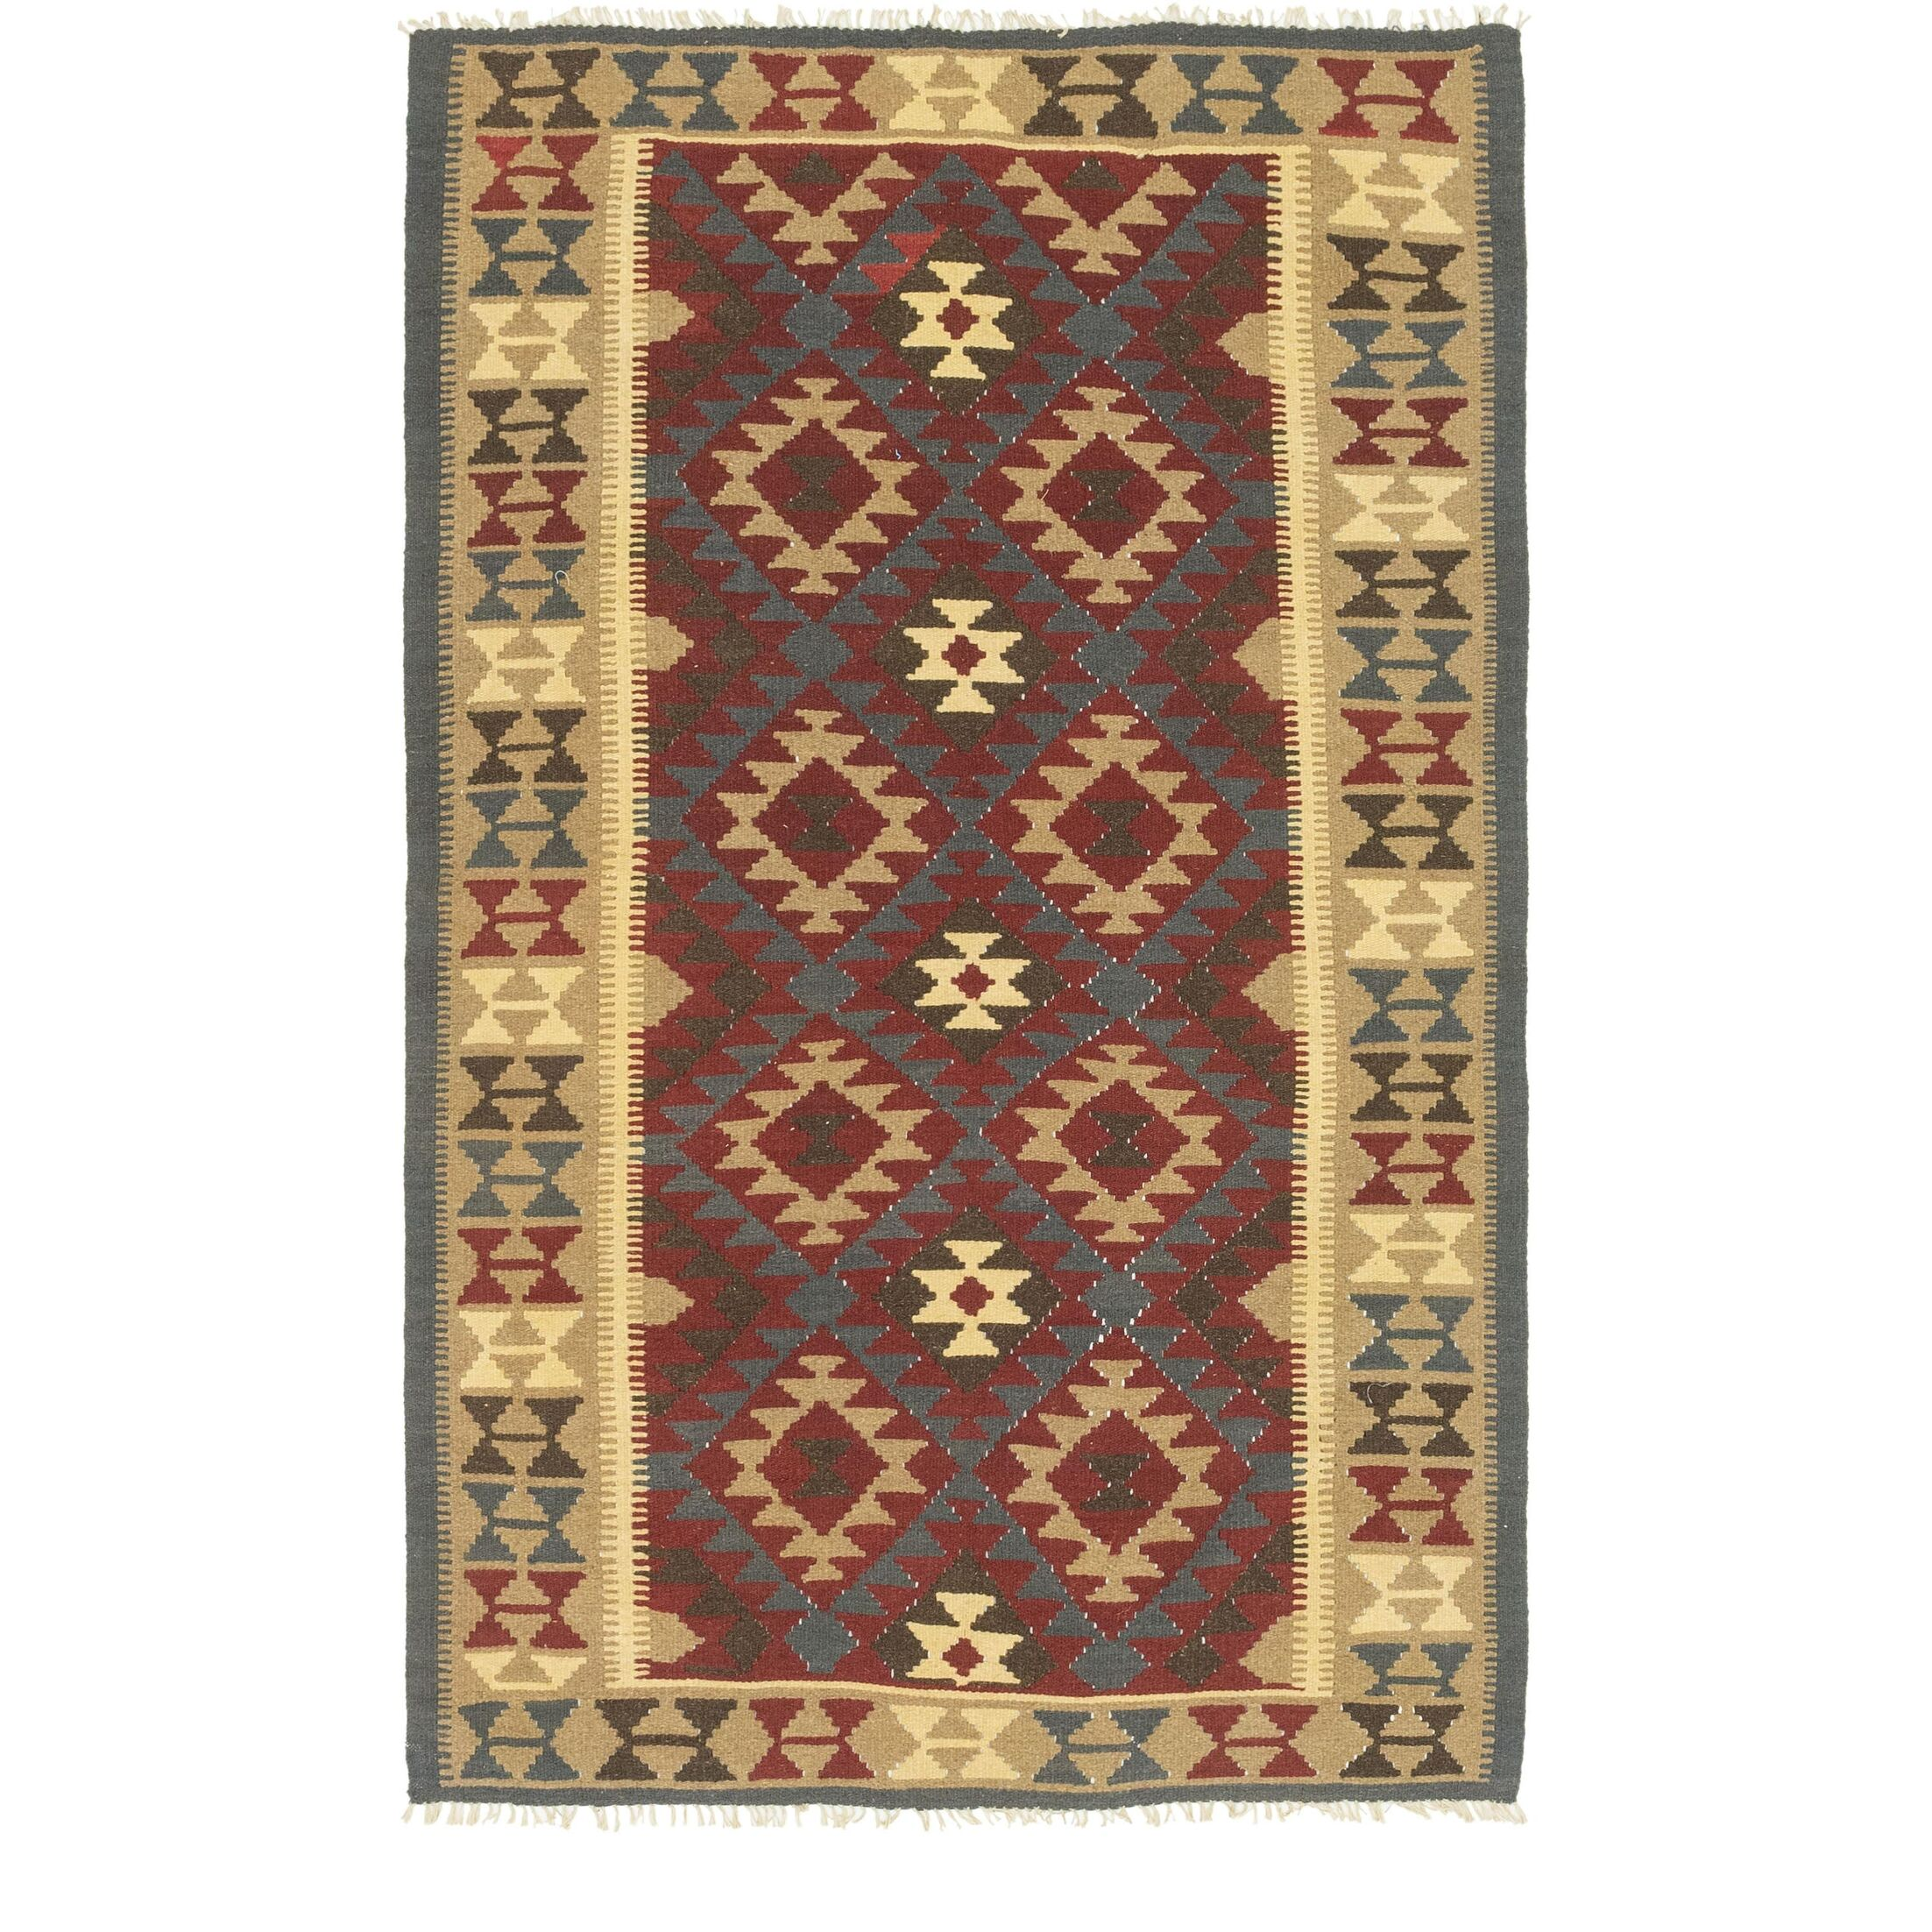 One-of-a-Kind Lorain Hand-Knotted 5' x 8' Wool Burgundy/Beige Area Rug